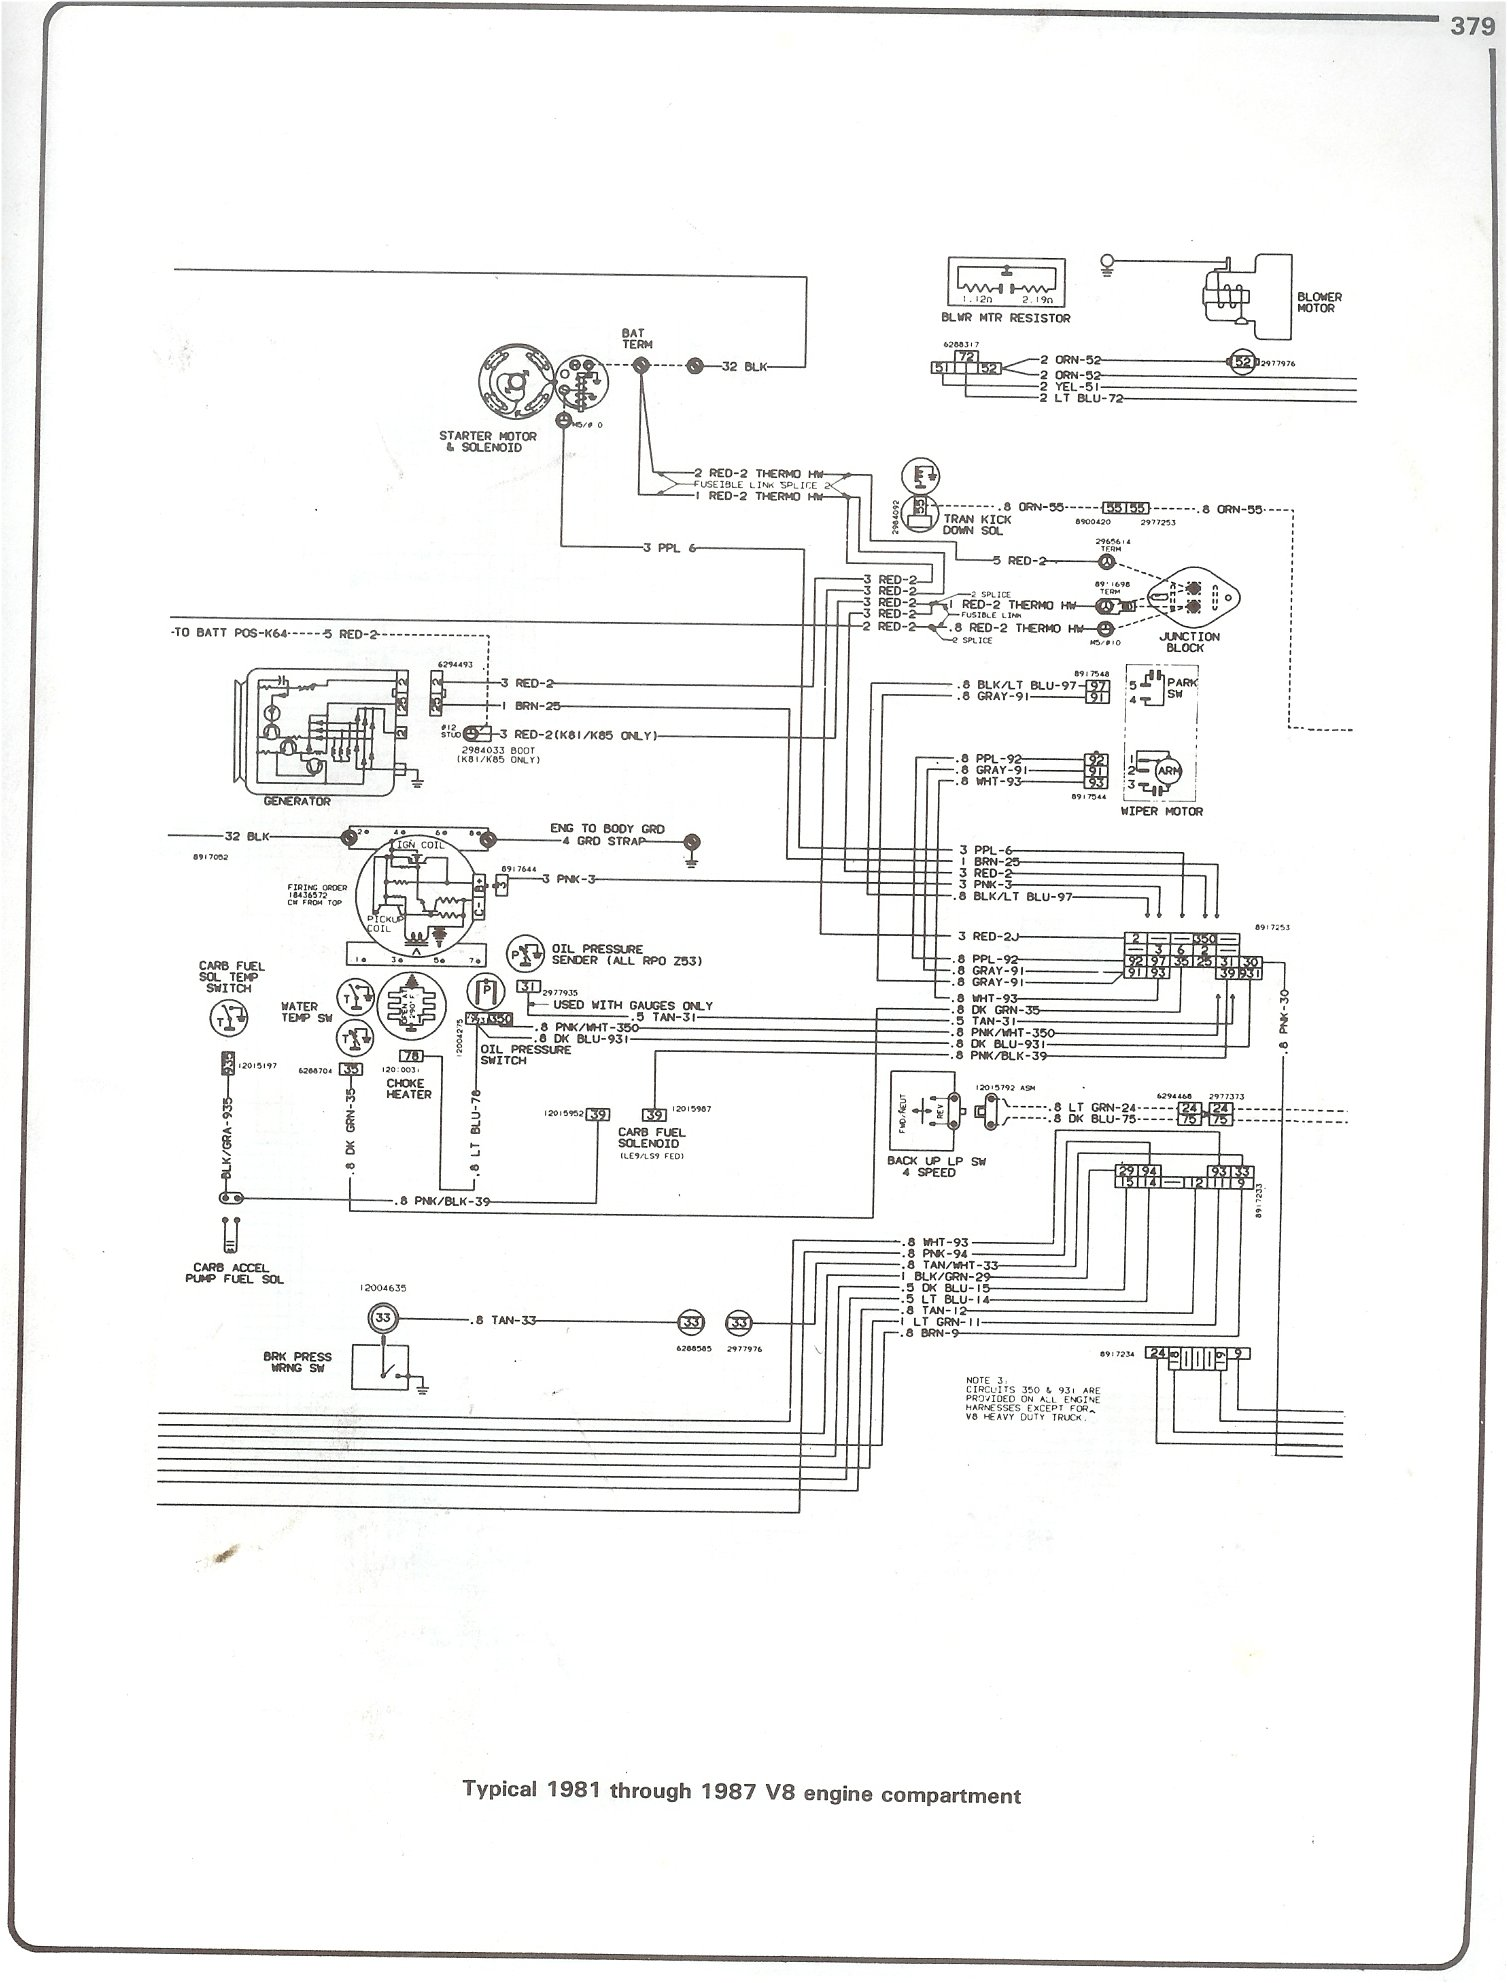 hight resolution of 1968 chevy c10 fuse box wiring library1955 corvette fuse box diagram complete 73 81